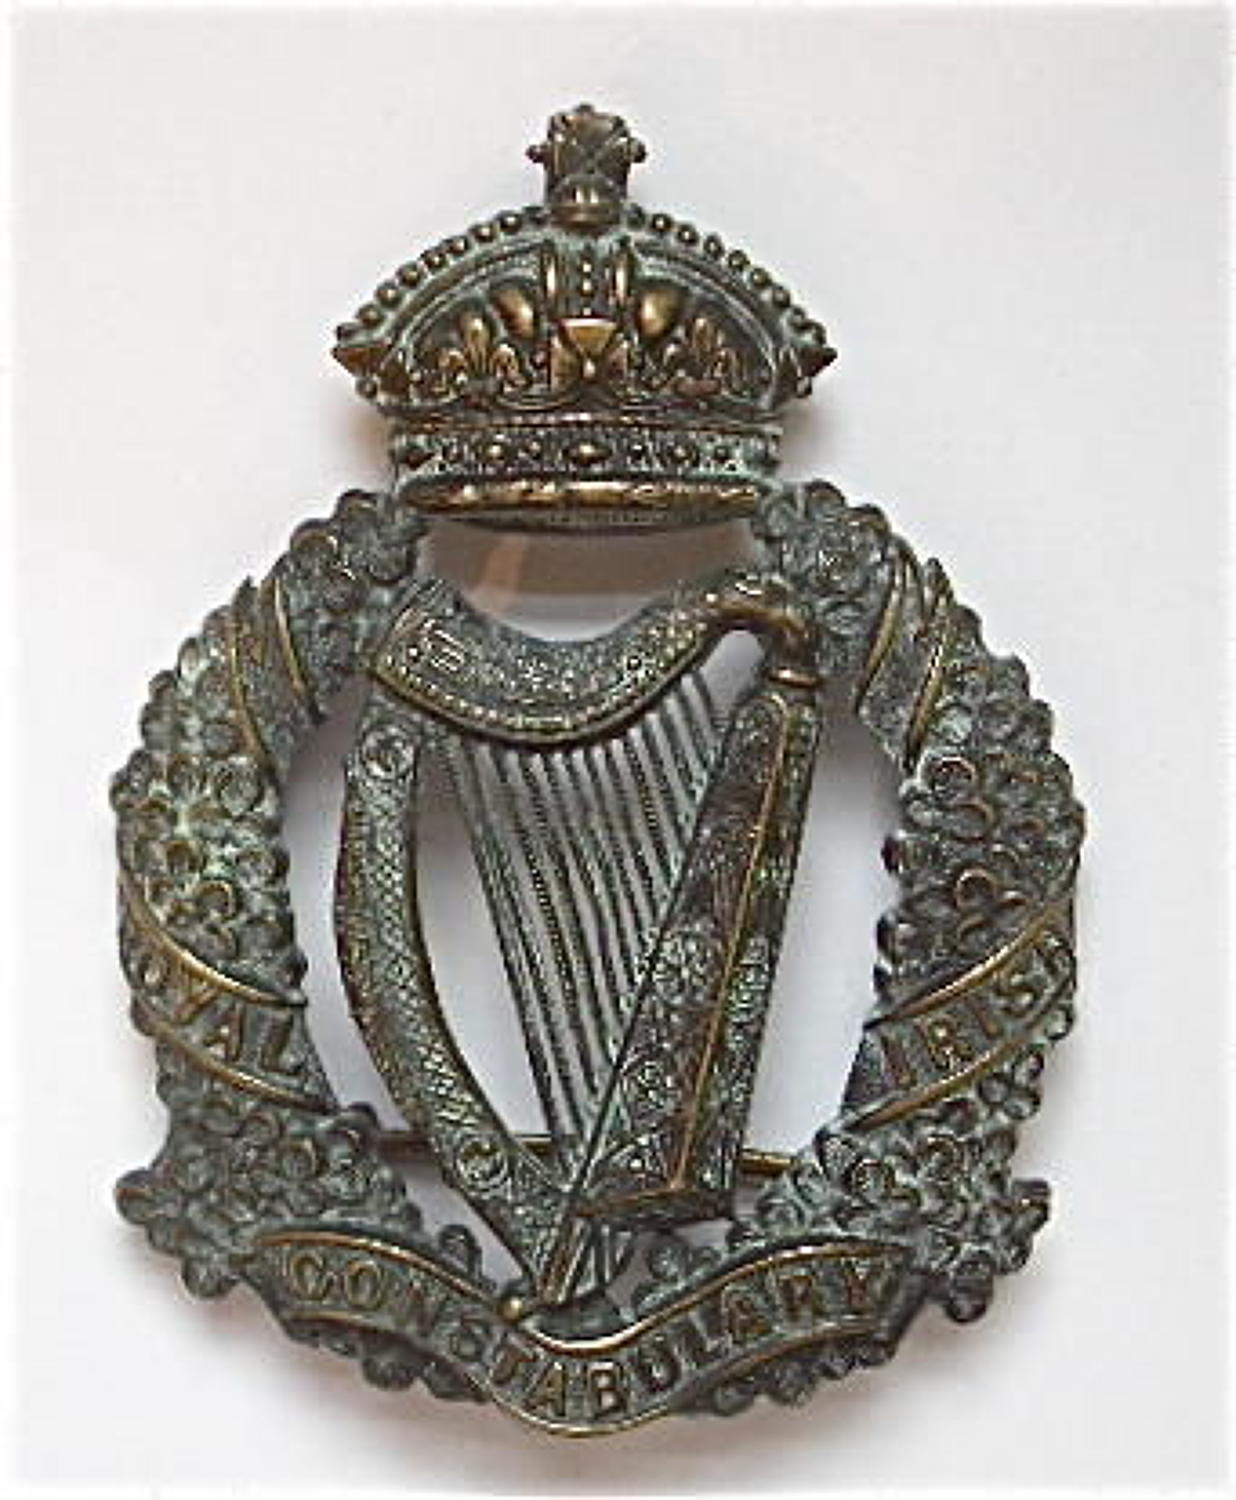 Royal Irish Constabulary Victorian helmet plate circa 1880-1902.